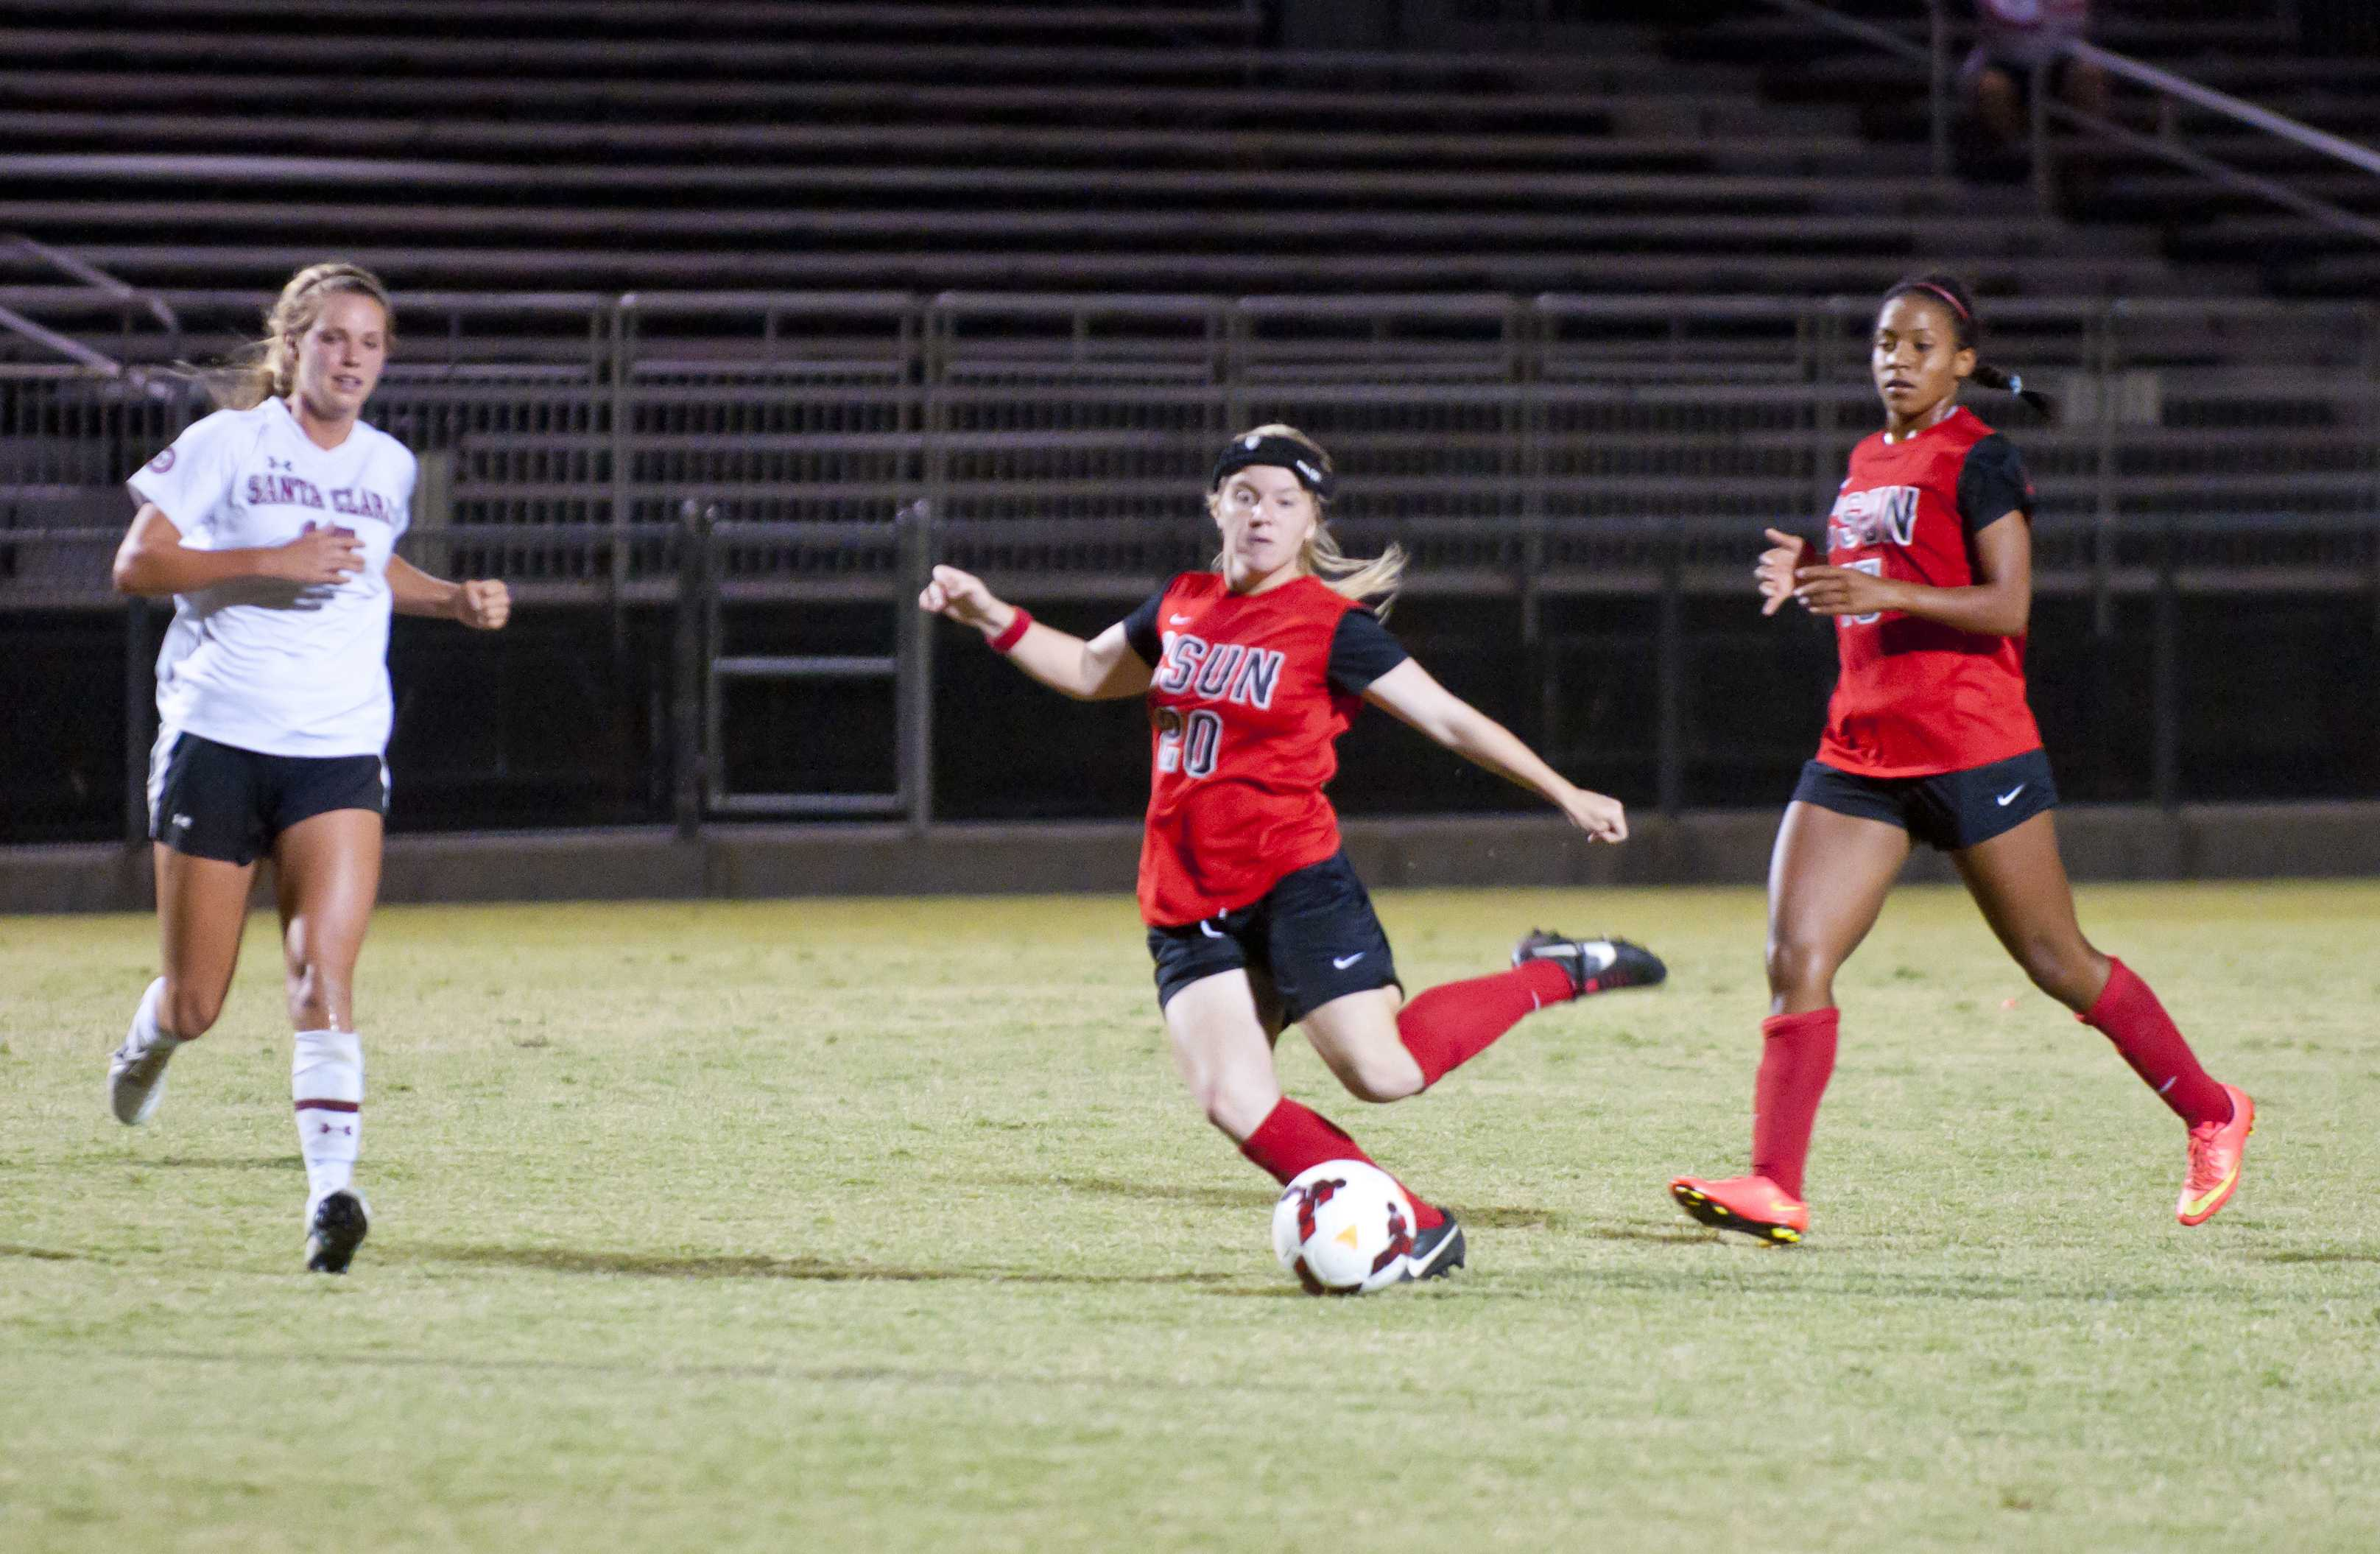 Matadors Kourtney Kutscher, center, tries to score as the Broncos midfielder Dani Weatherholt, left, races to the ball in the first half at the Matador Soccer Field on Friday, September 26, 2014 in Northridge, Calif. With the game resulting a 1-0 loss against the Santa Clara Broncos who proved to be a strong defensive team with a 5-4 record with no losses as the Matadors press on with several offensive plays despite the Broncos 5 saves the Matadors were unable to score. (Photo Credit: David J. Hawkins/The Sundial)